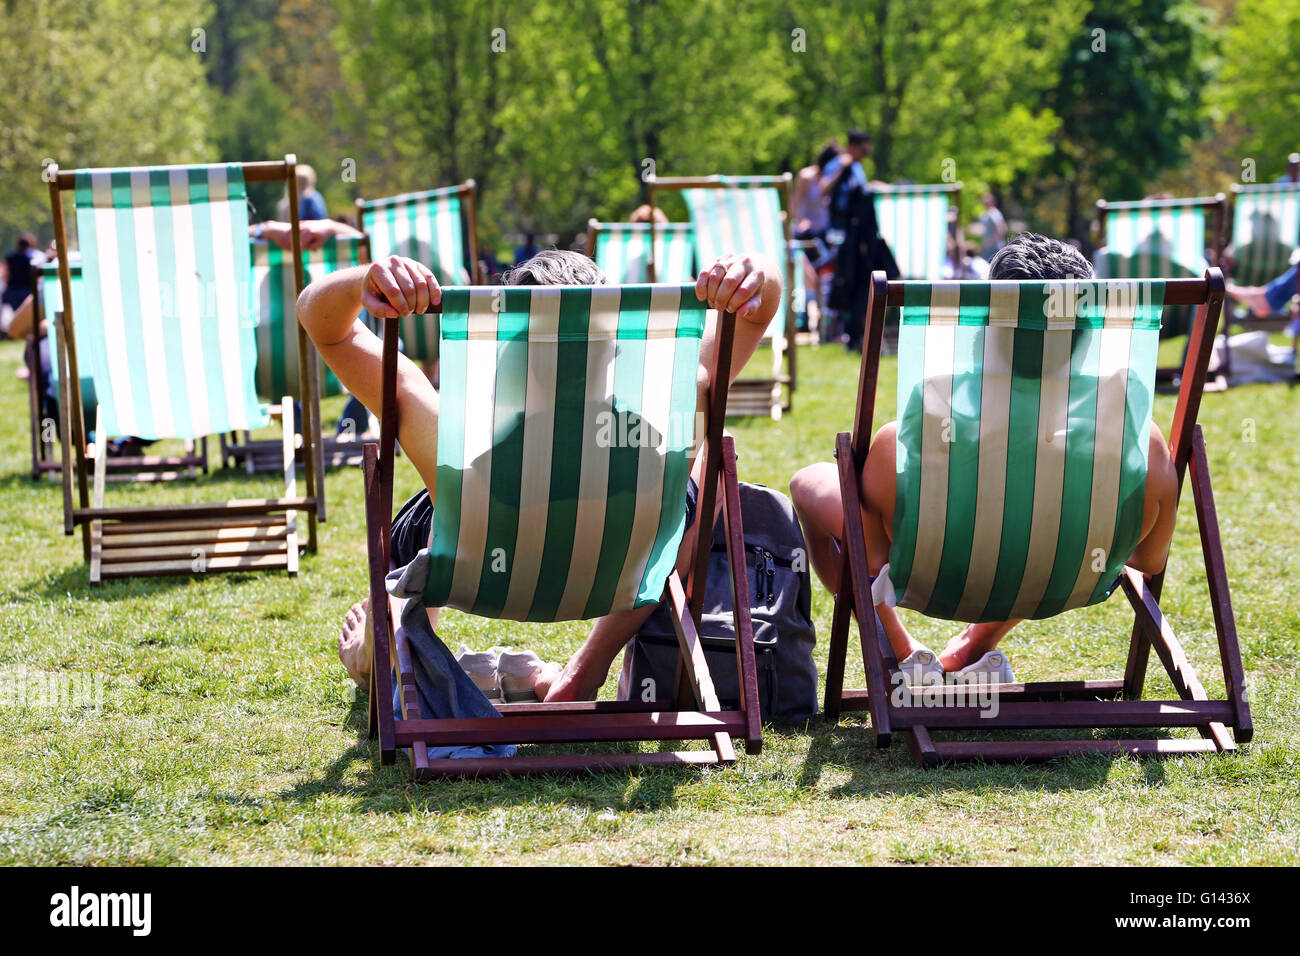 London, UK. 8th May 2016. Hot Summer Weather brings people out sunbathing in deckchairs in Green Park in London, - Stock Image